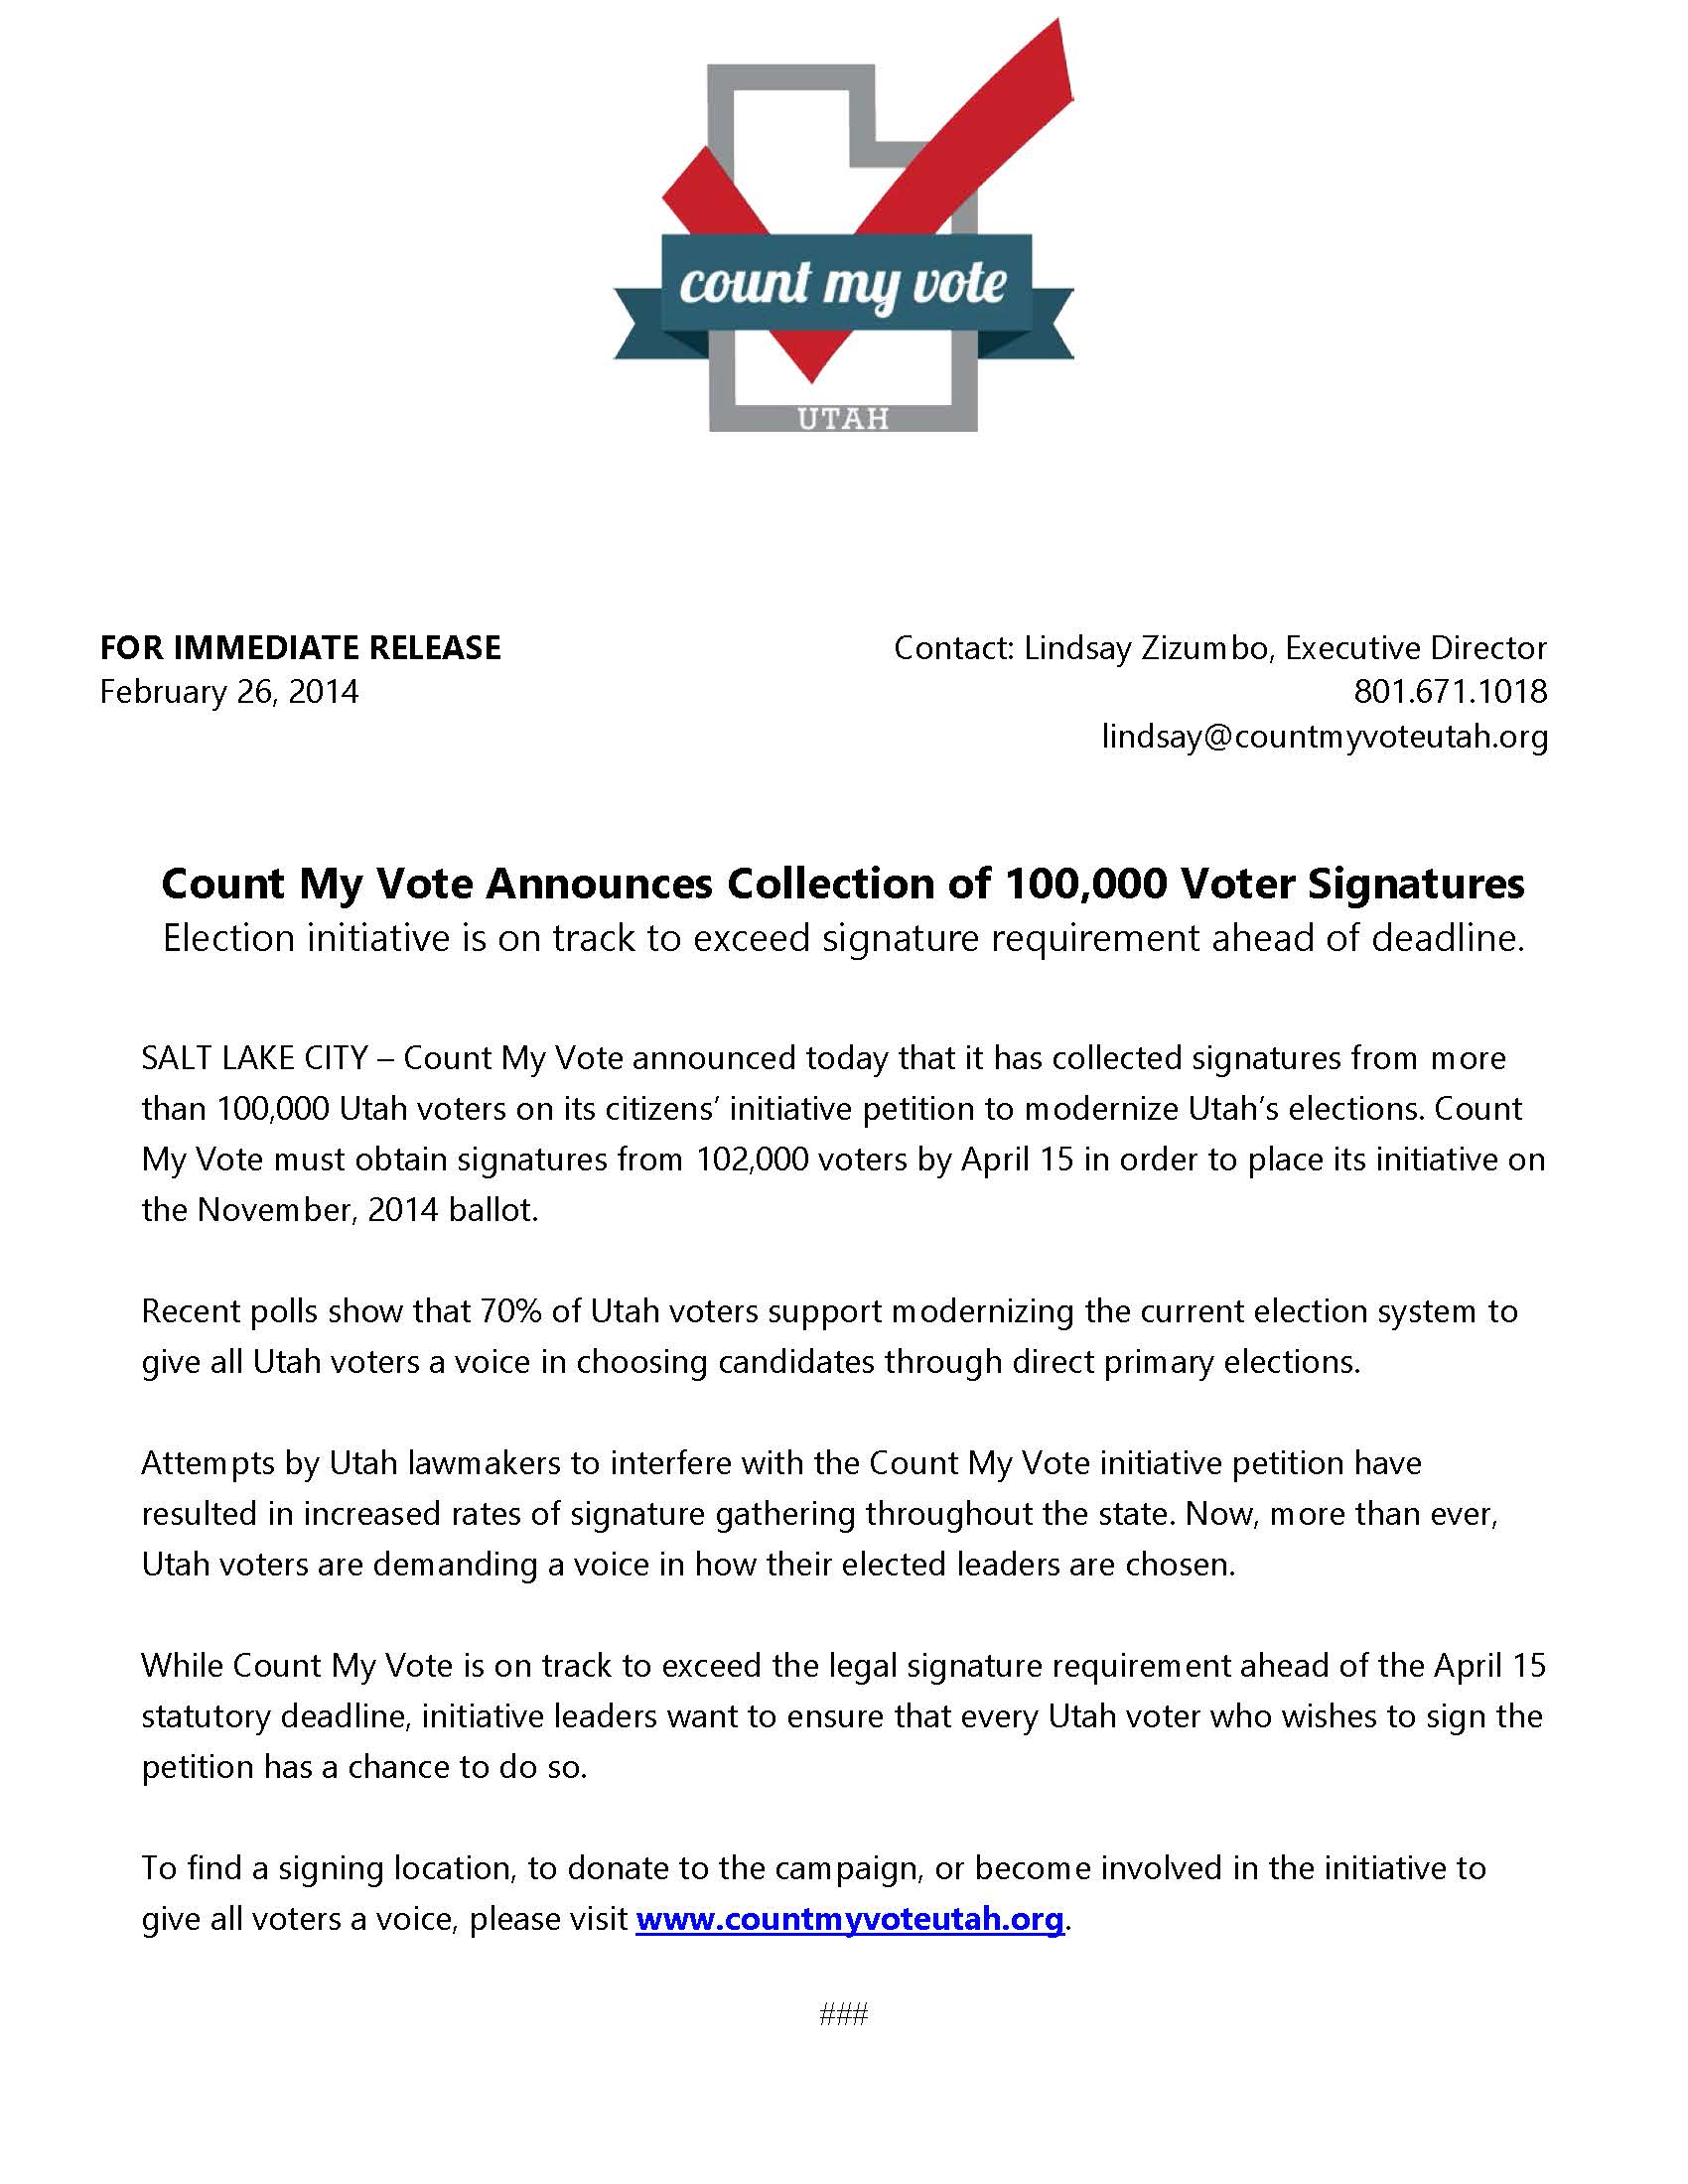 Count My Vote Announces Collection of 100,000 Voter Signatures.jpg